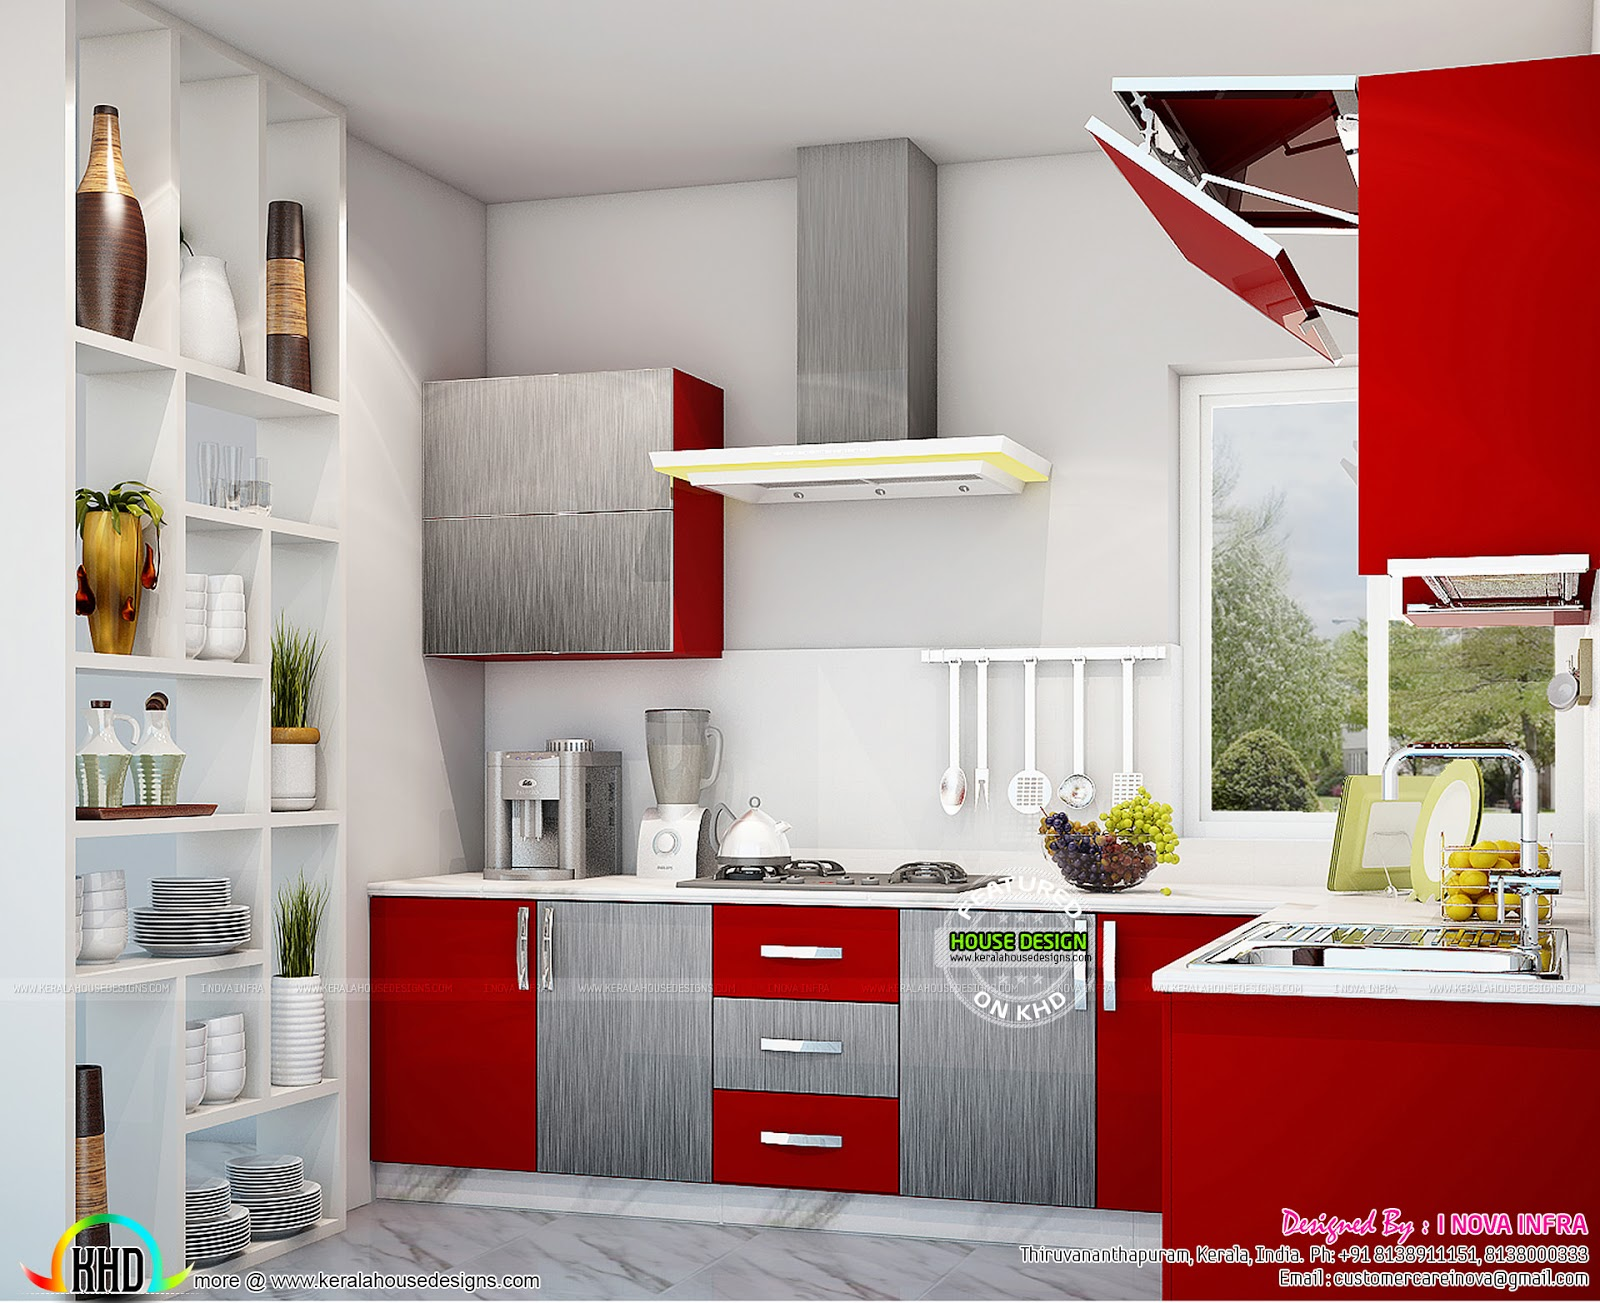 Kitchen interior works at trivandrum kerala home design and floor plans - Kitchen interior designing ...